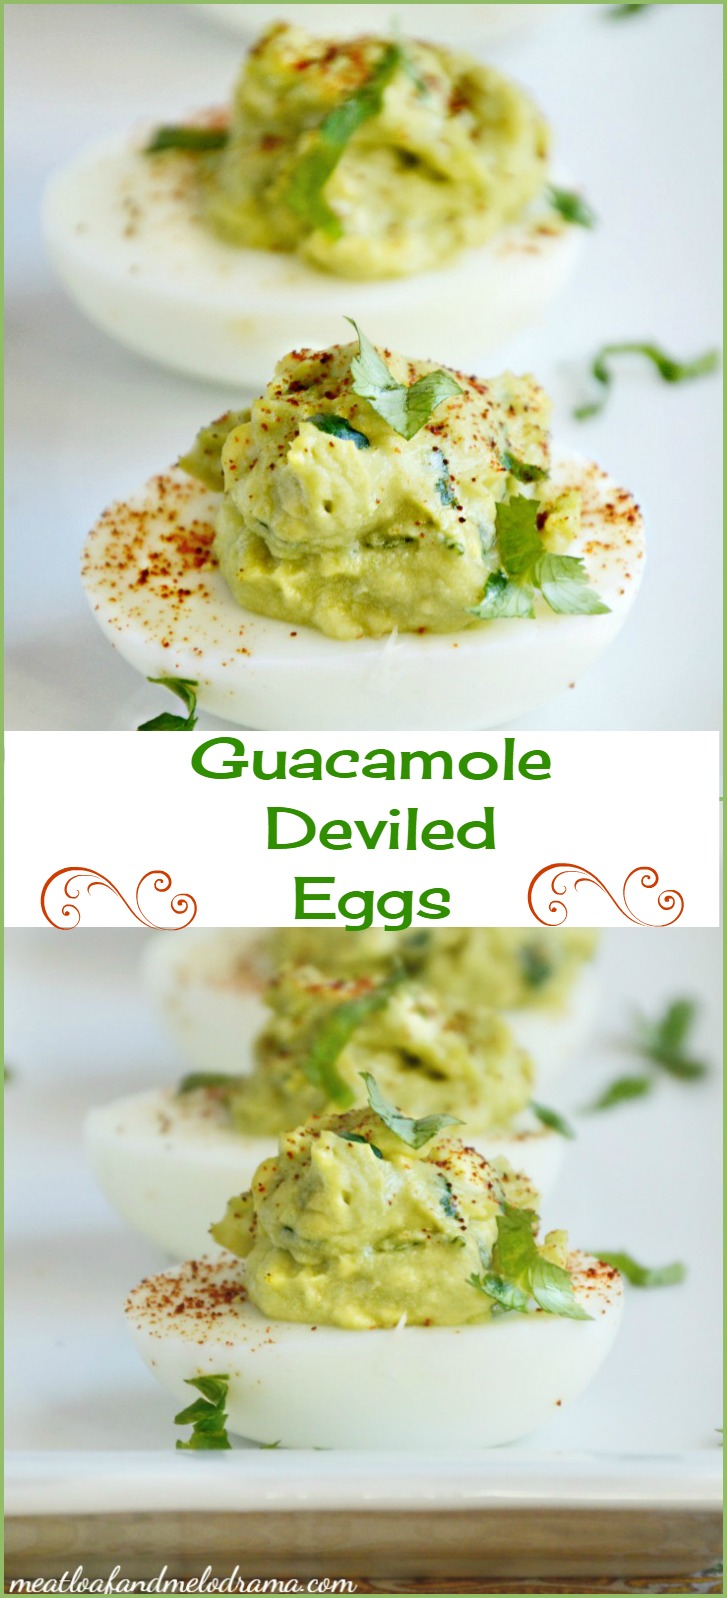 Have you ever used avocados in your deviled eggs?